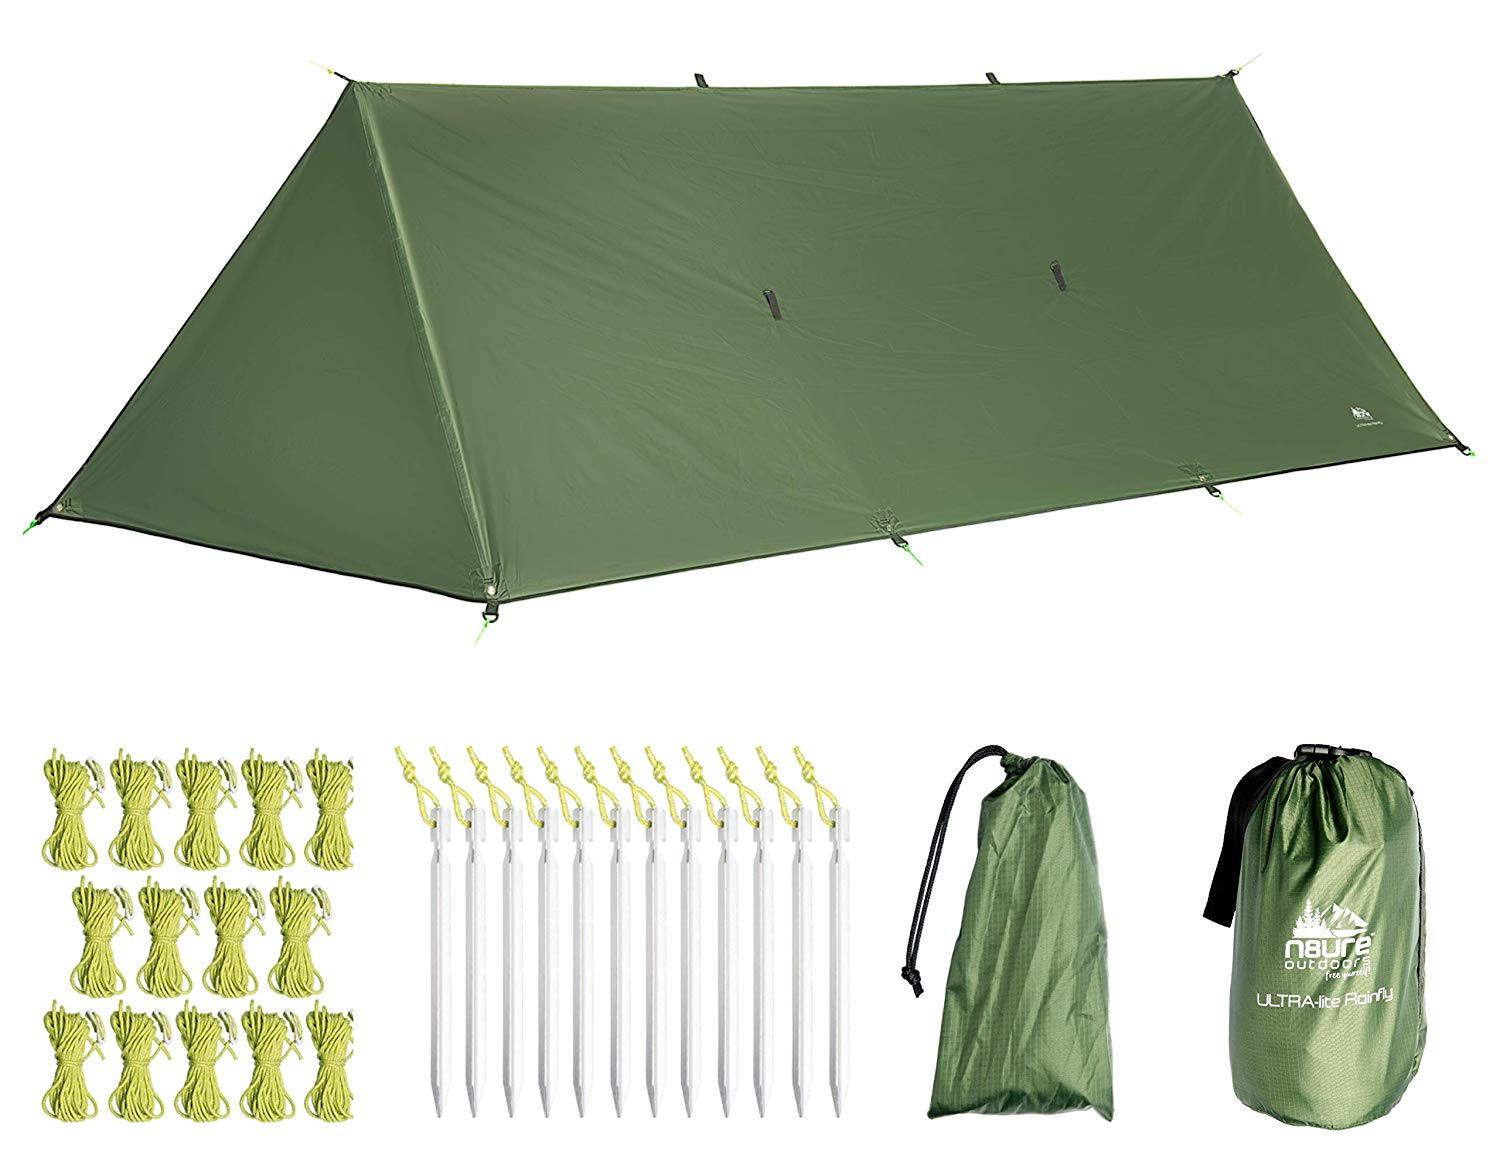 0f83d8e2927 Get Quotations · Camping Rain Fly Tarp 16 x10  with Doors Premium Ultralight  Tent Ripstop Nylon Waterproof